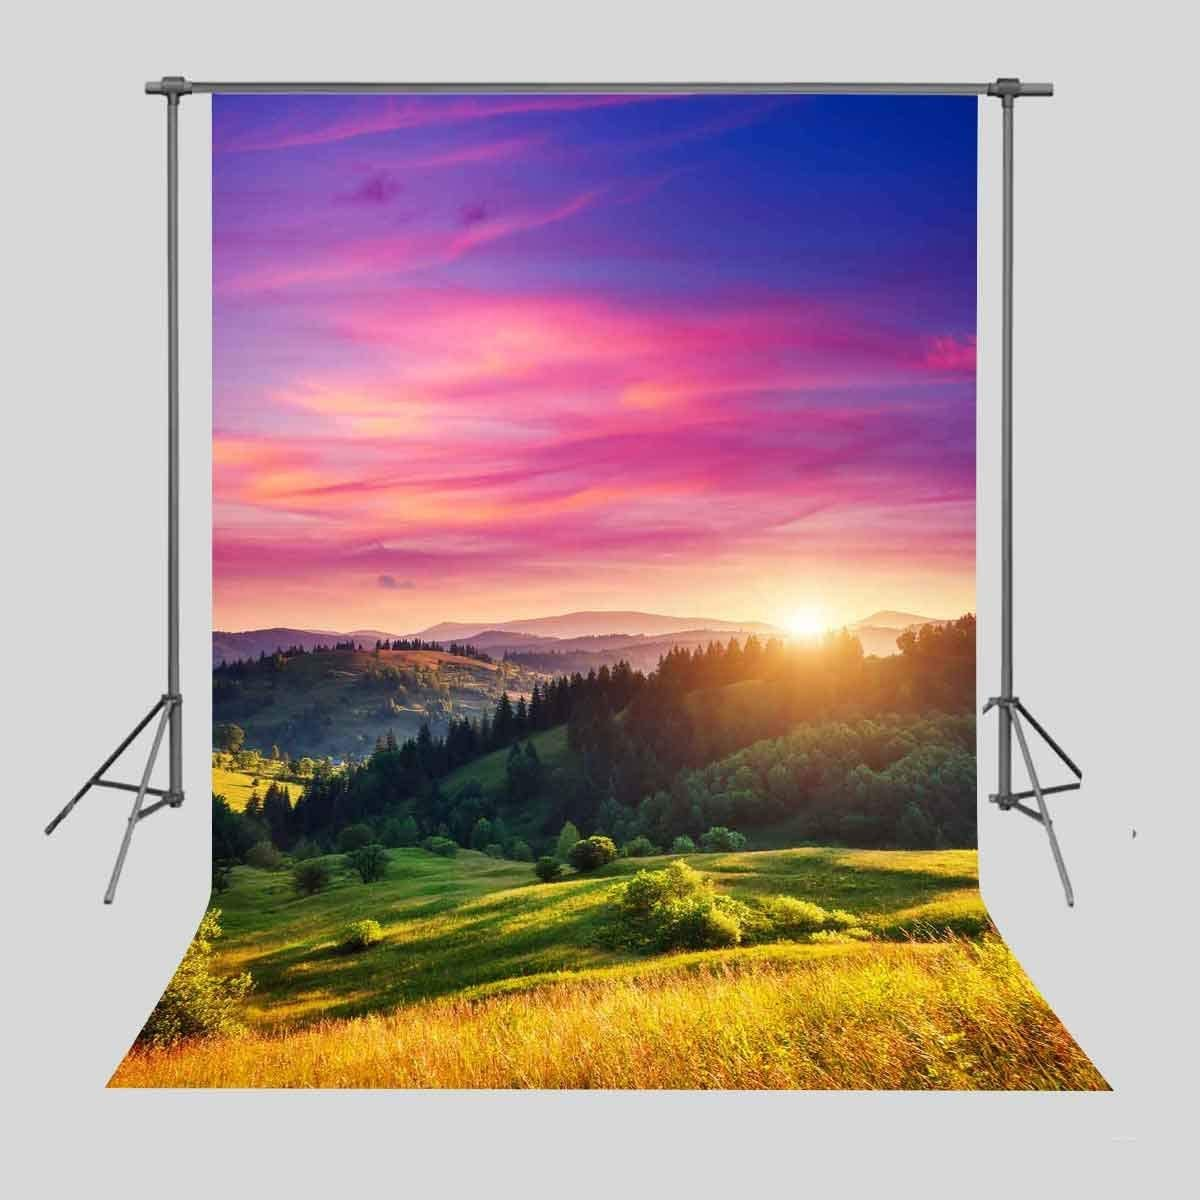 8x10ft Background Sunrise Mountain and Forest Photography Backdrop Photo Props Beautiful Scenery Murals LXFU037